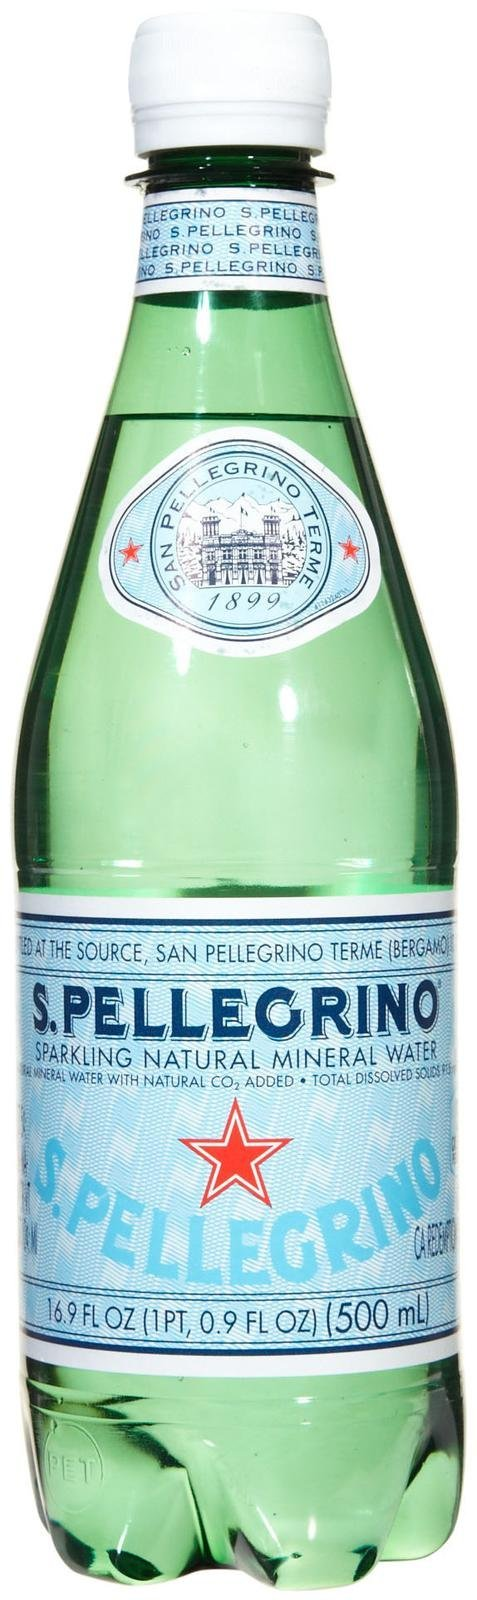 San Pellegrino Sparkling Natural Mineral Water, 25.3-ounce glass bottles (Pack of 12) by San Pellegrino